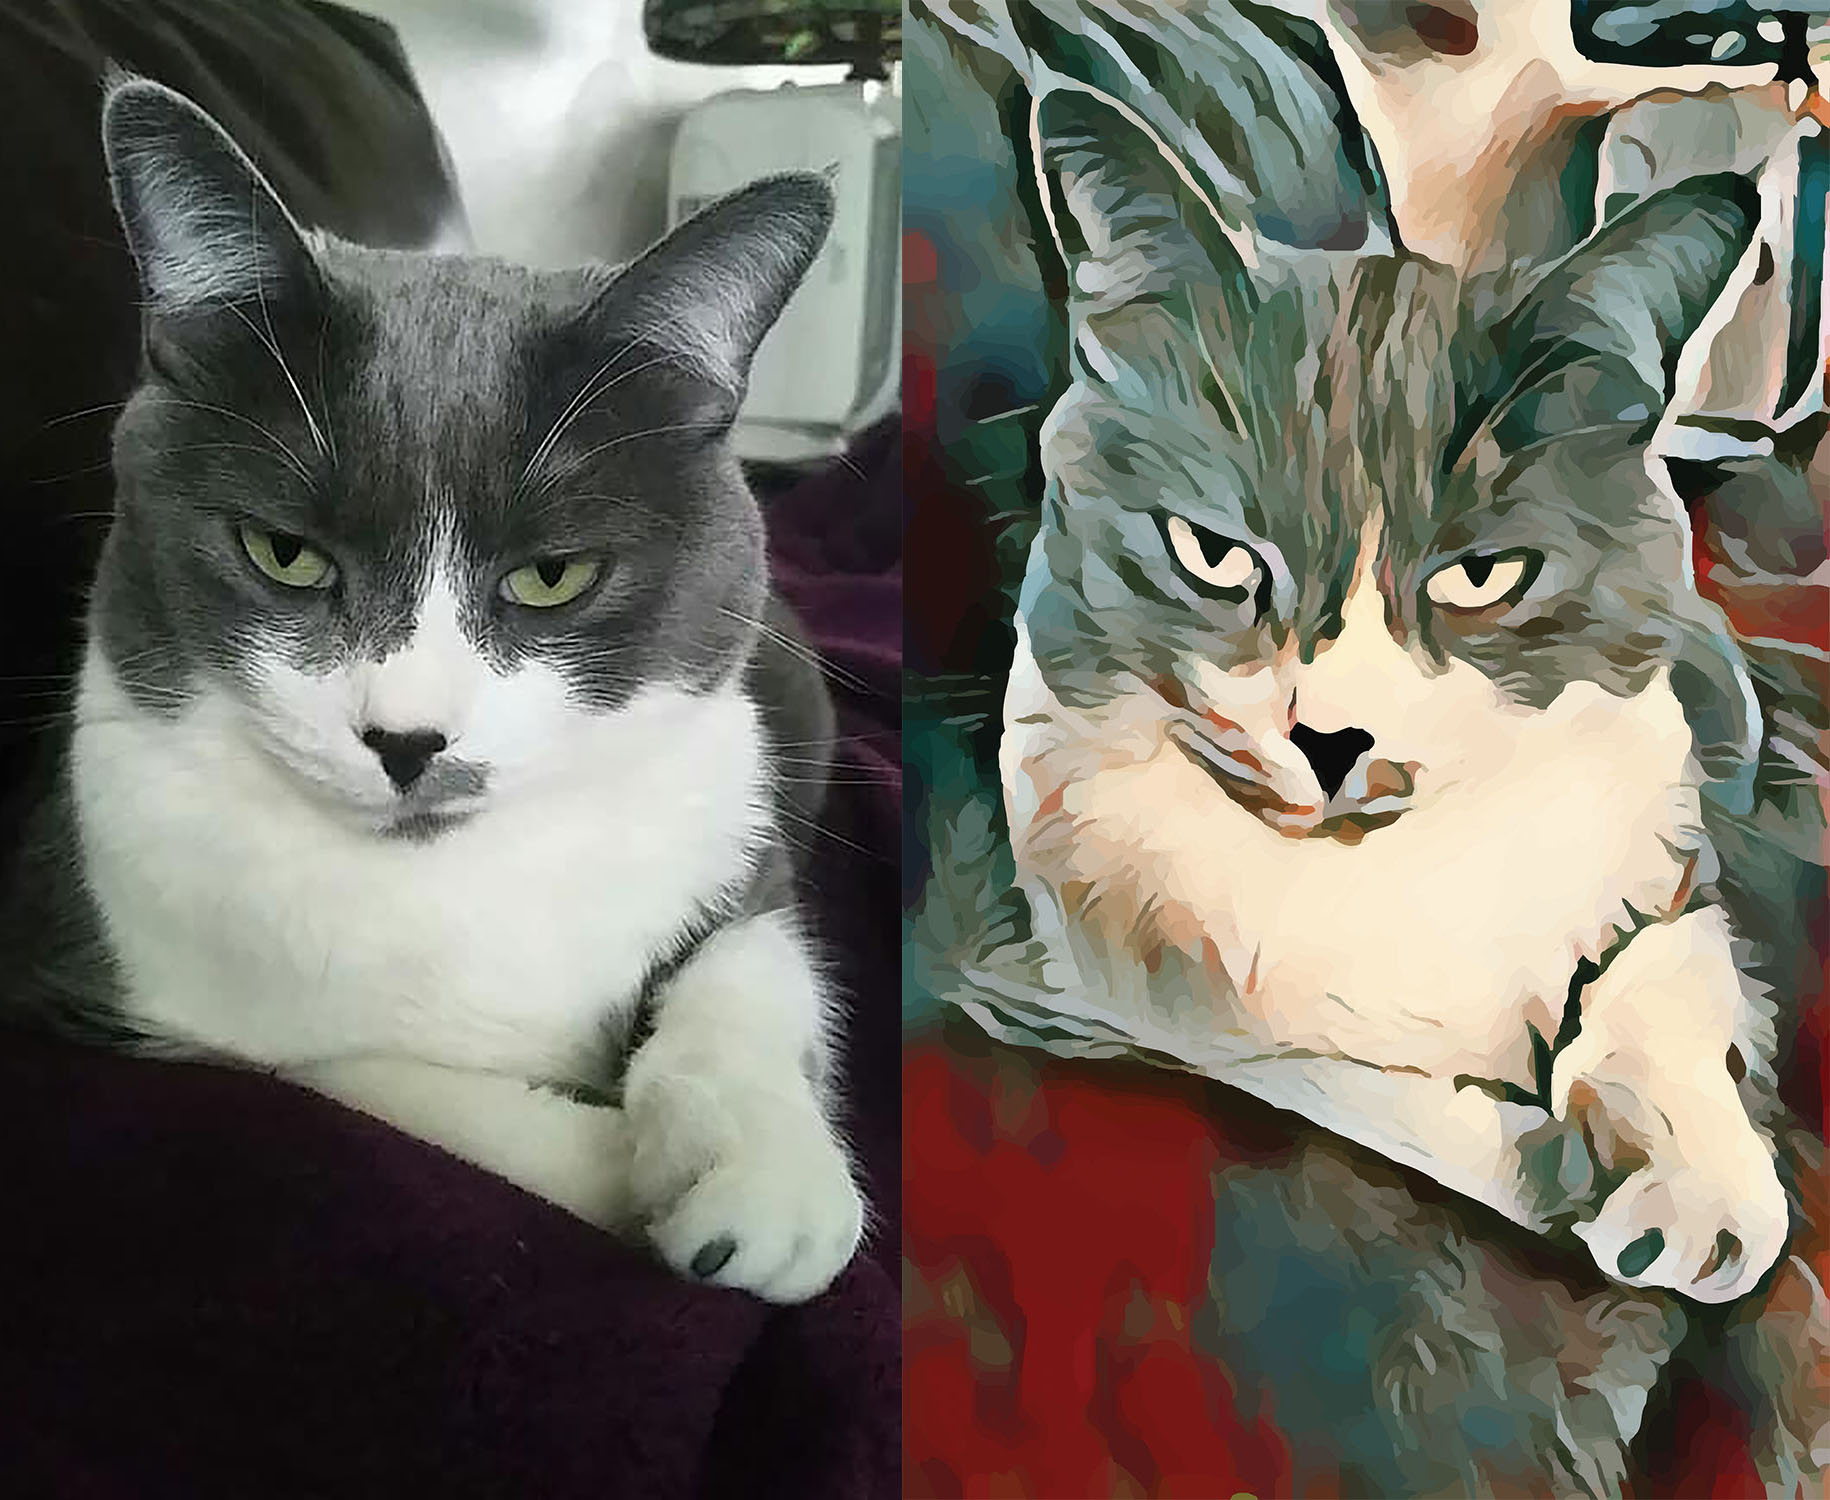 Before and after stylized image of cat's face